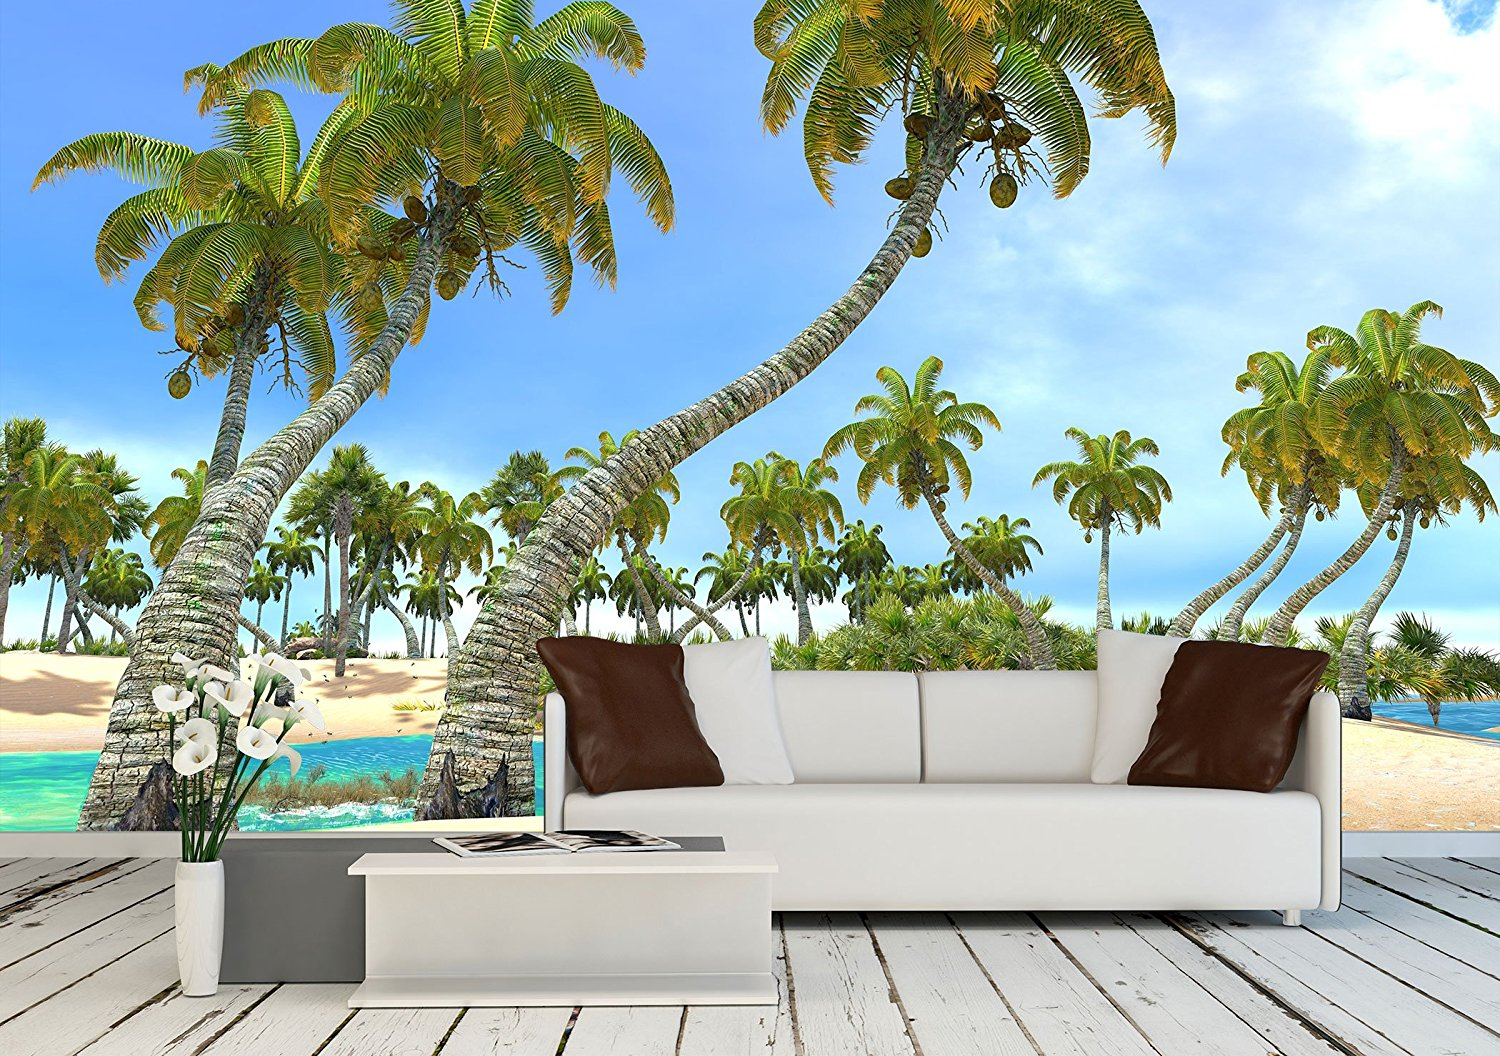 Tropical Paradise Beach – Removable Wall Mural